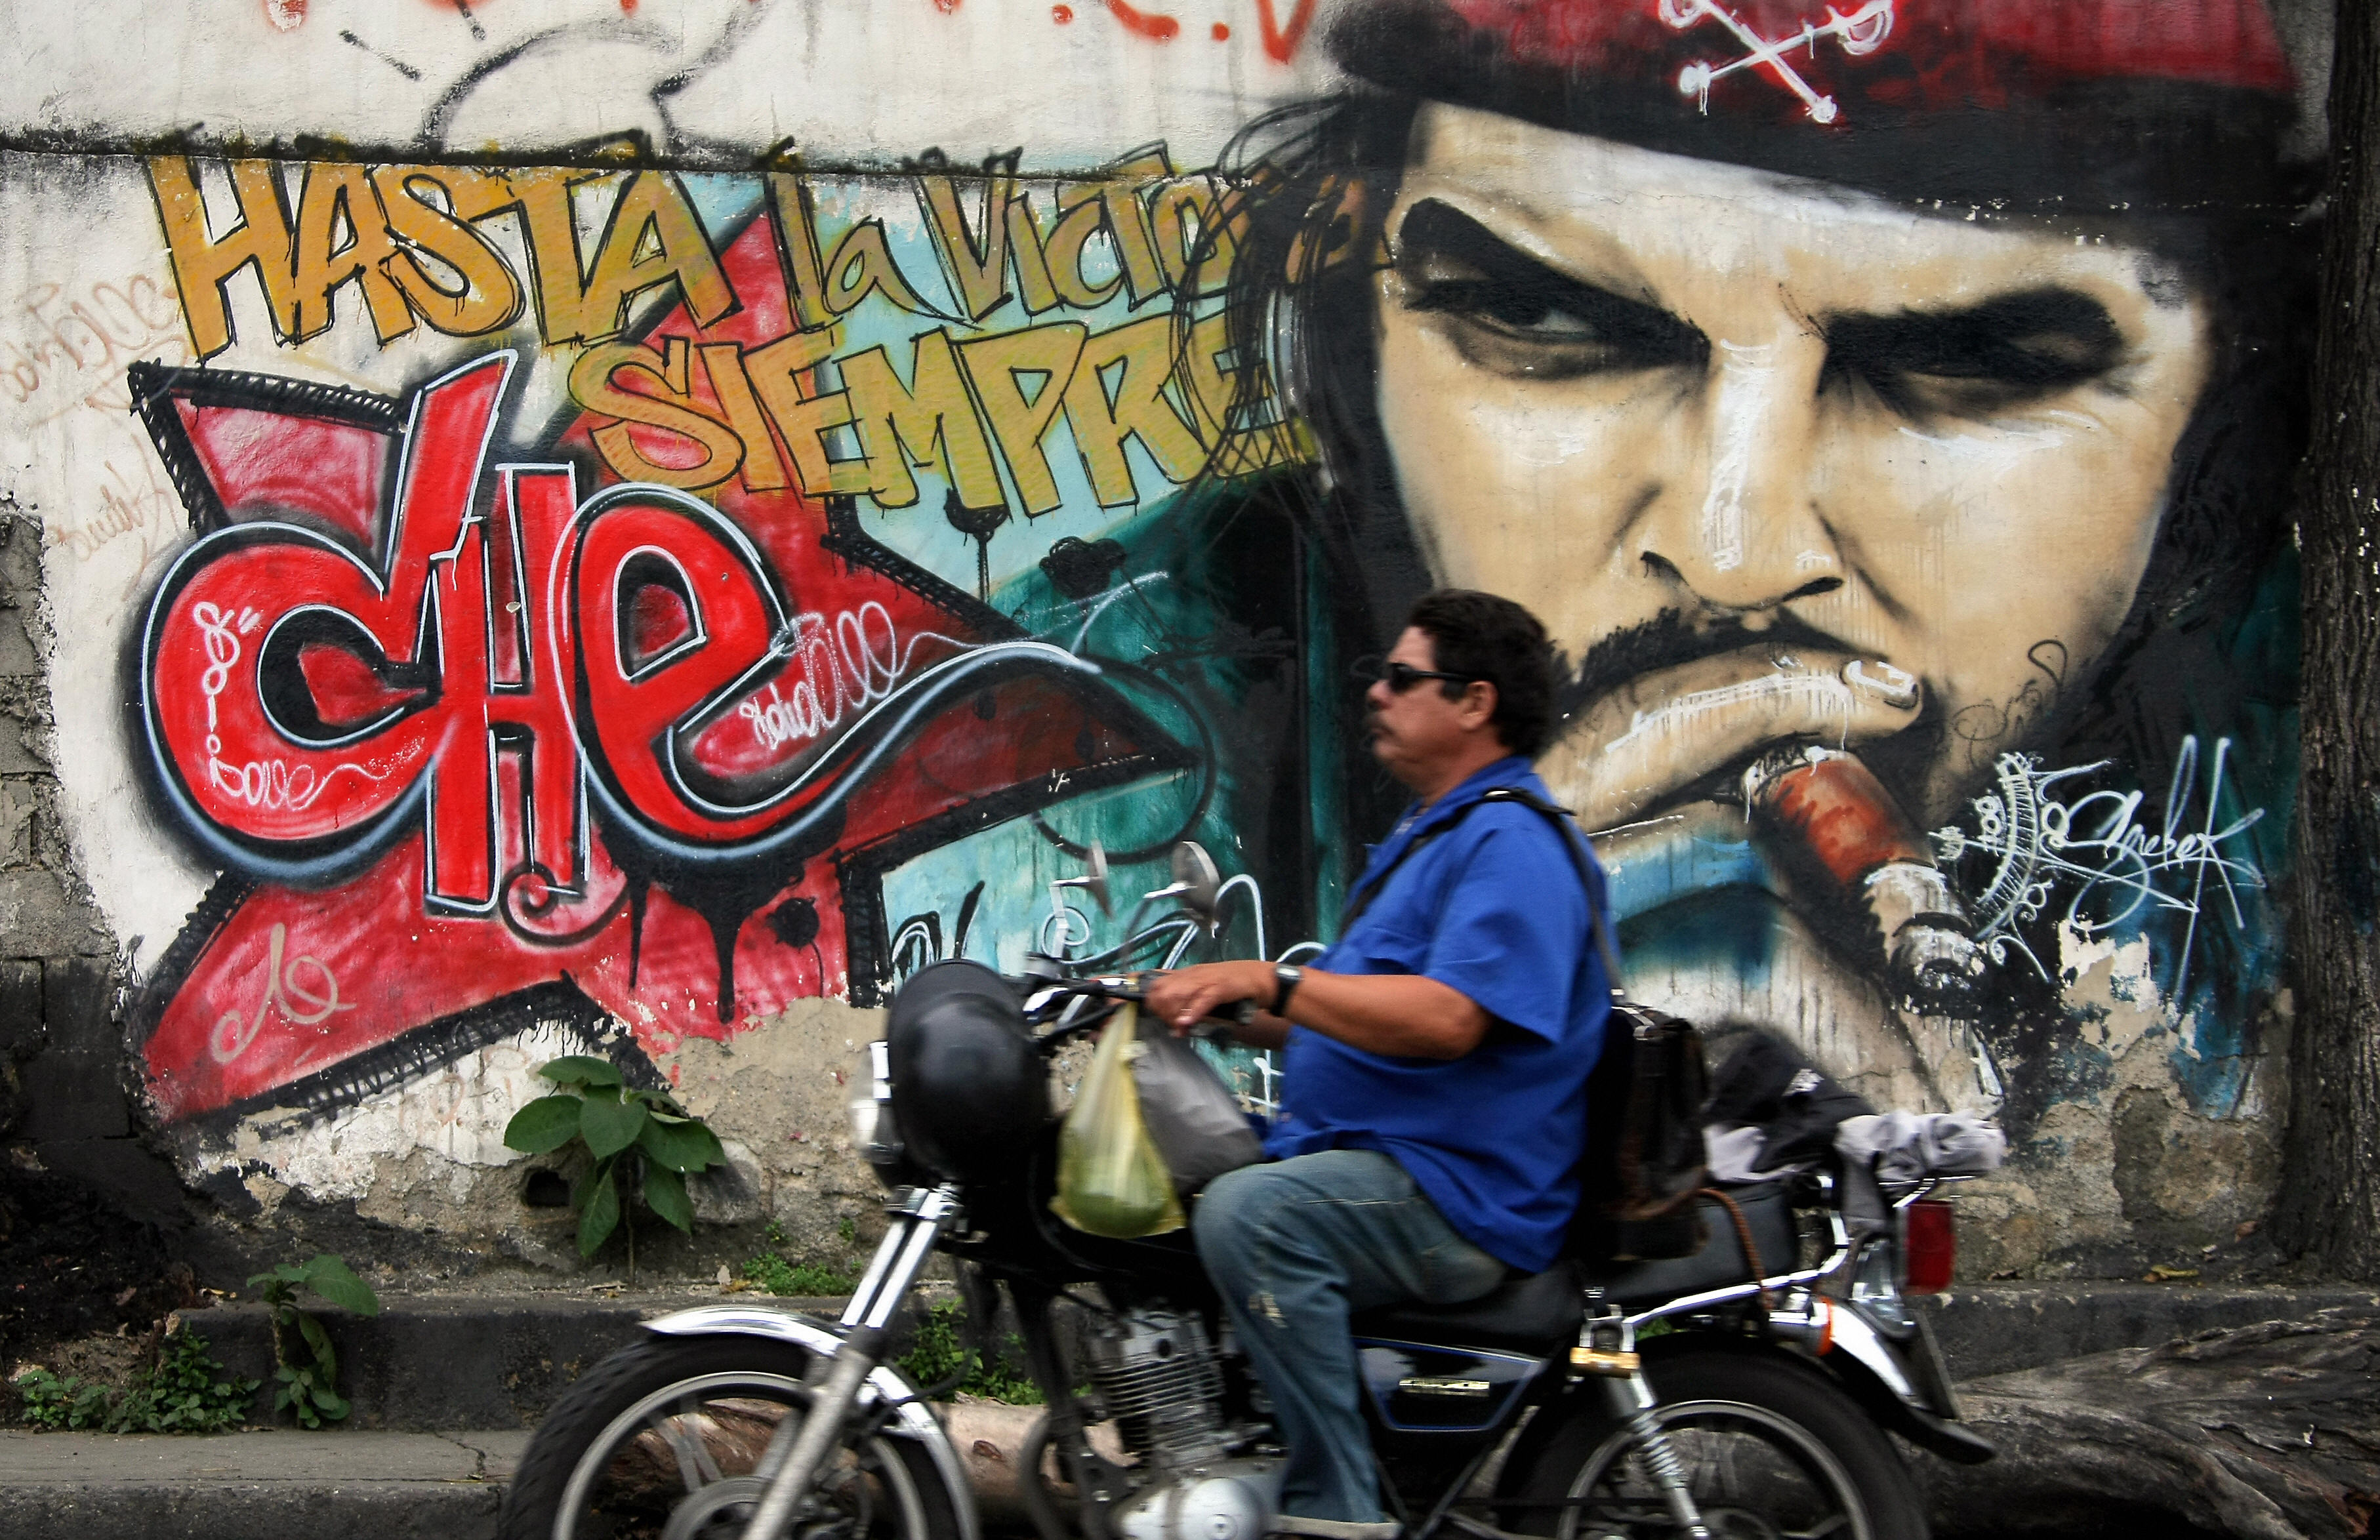 Che Guevara's son leads motorcycle tours in Cuba